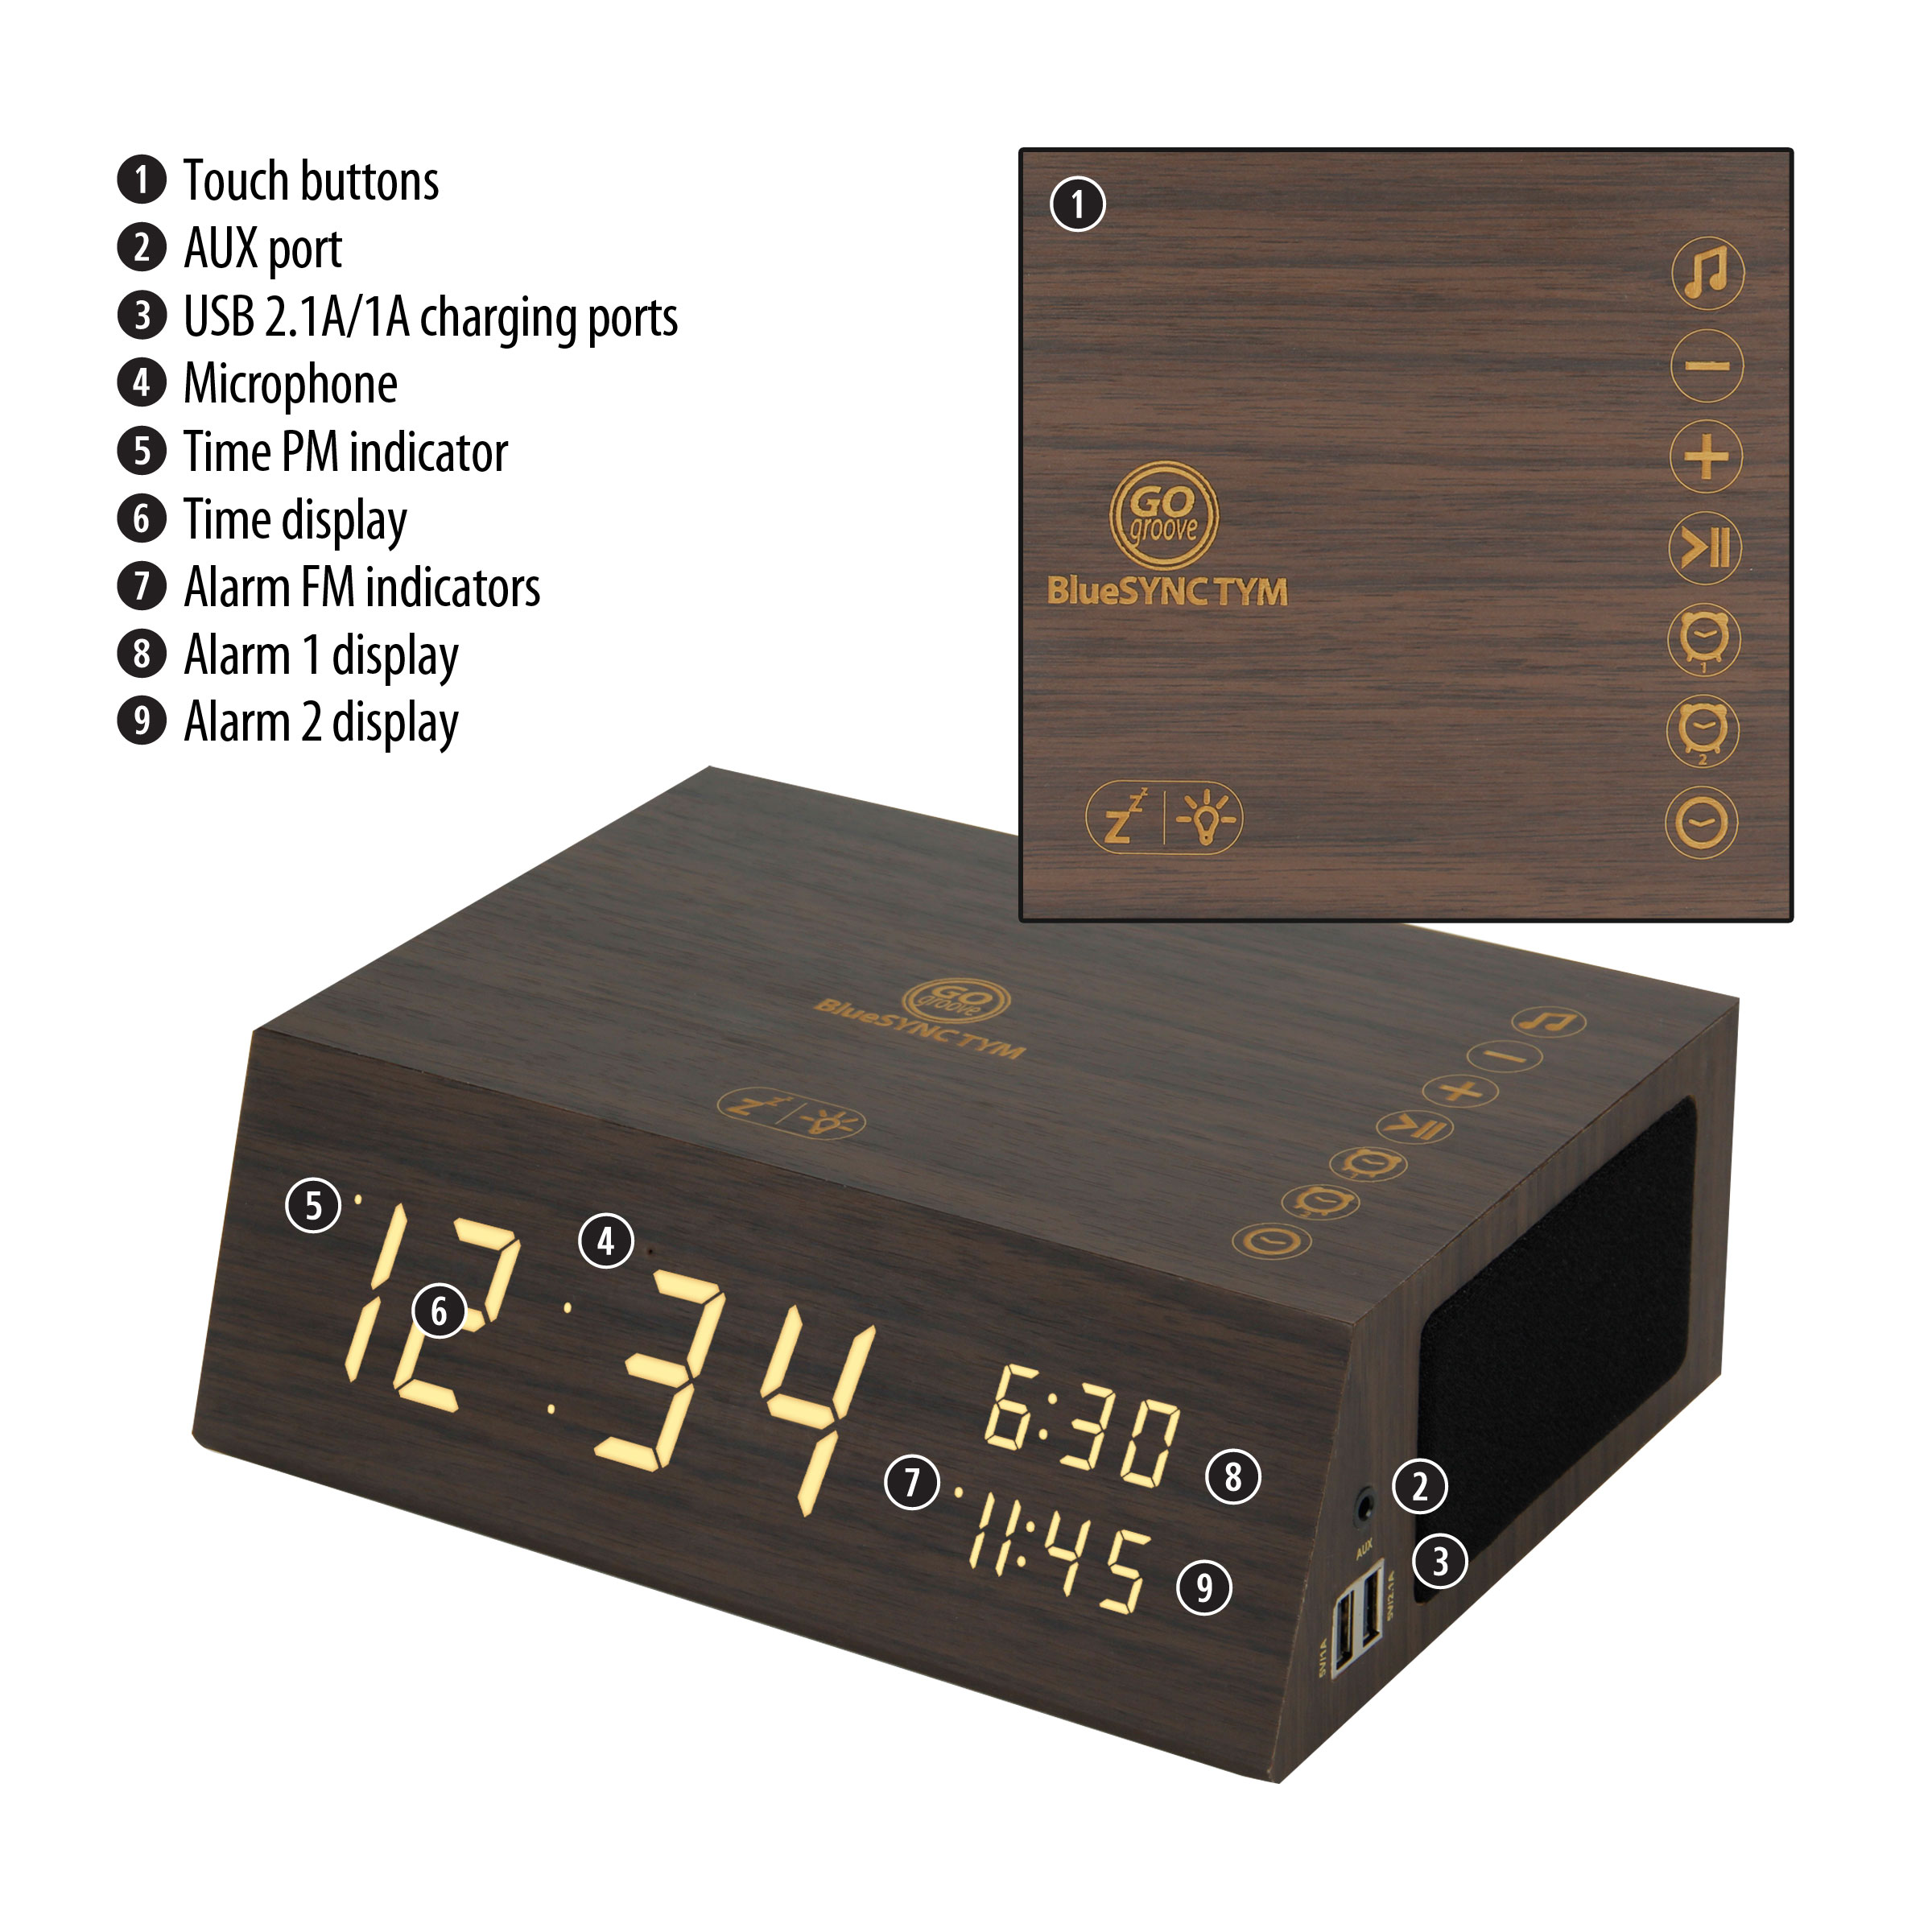 Bluetooth Alarm Clock Radio Speaker by GOgroove - Wood , FM Radio , Dual Alarms , USB Charging Ports 2